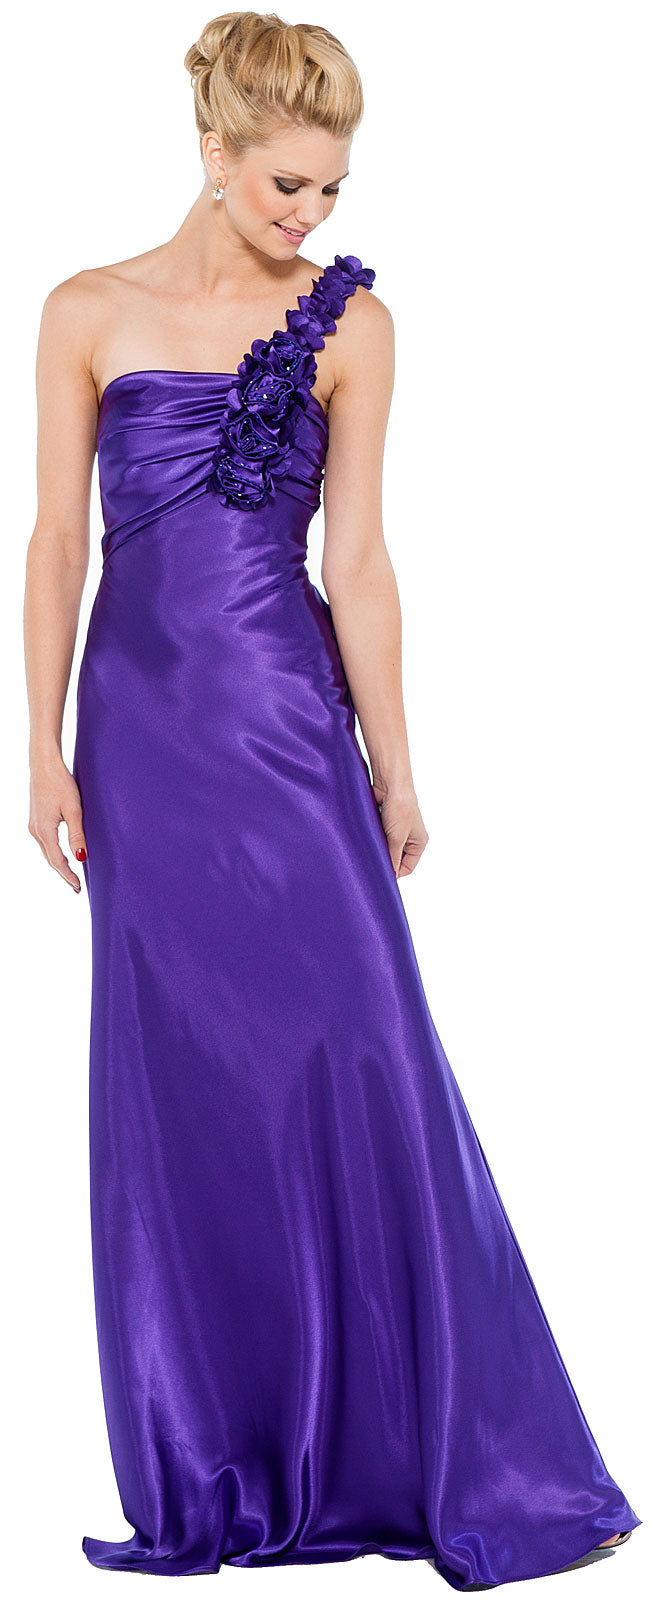 Main image of Floral One Shoulder Full Length Formal Bridesmaid Dress